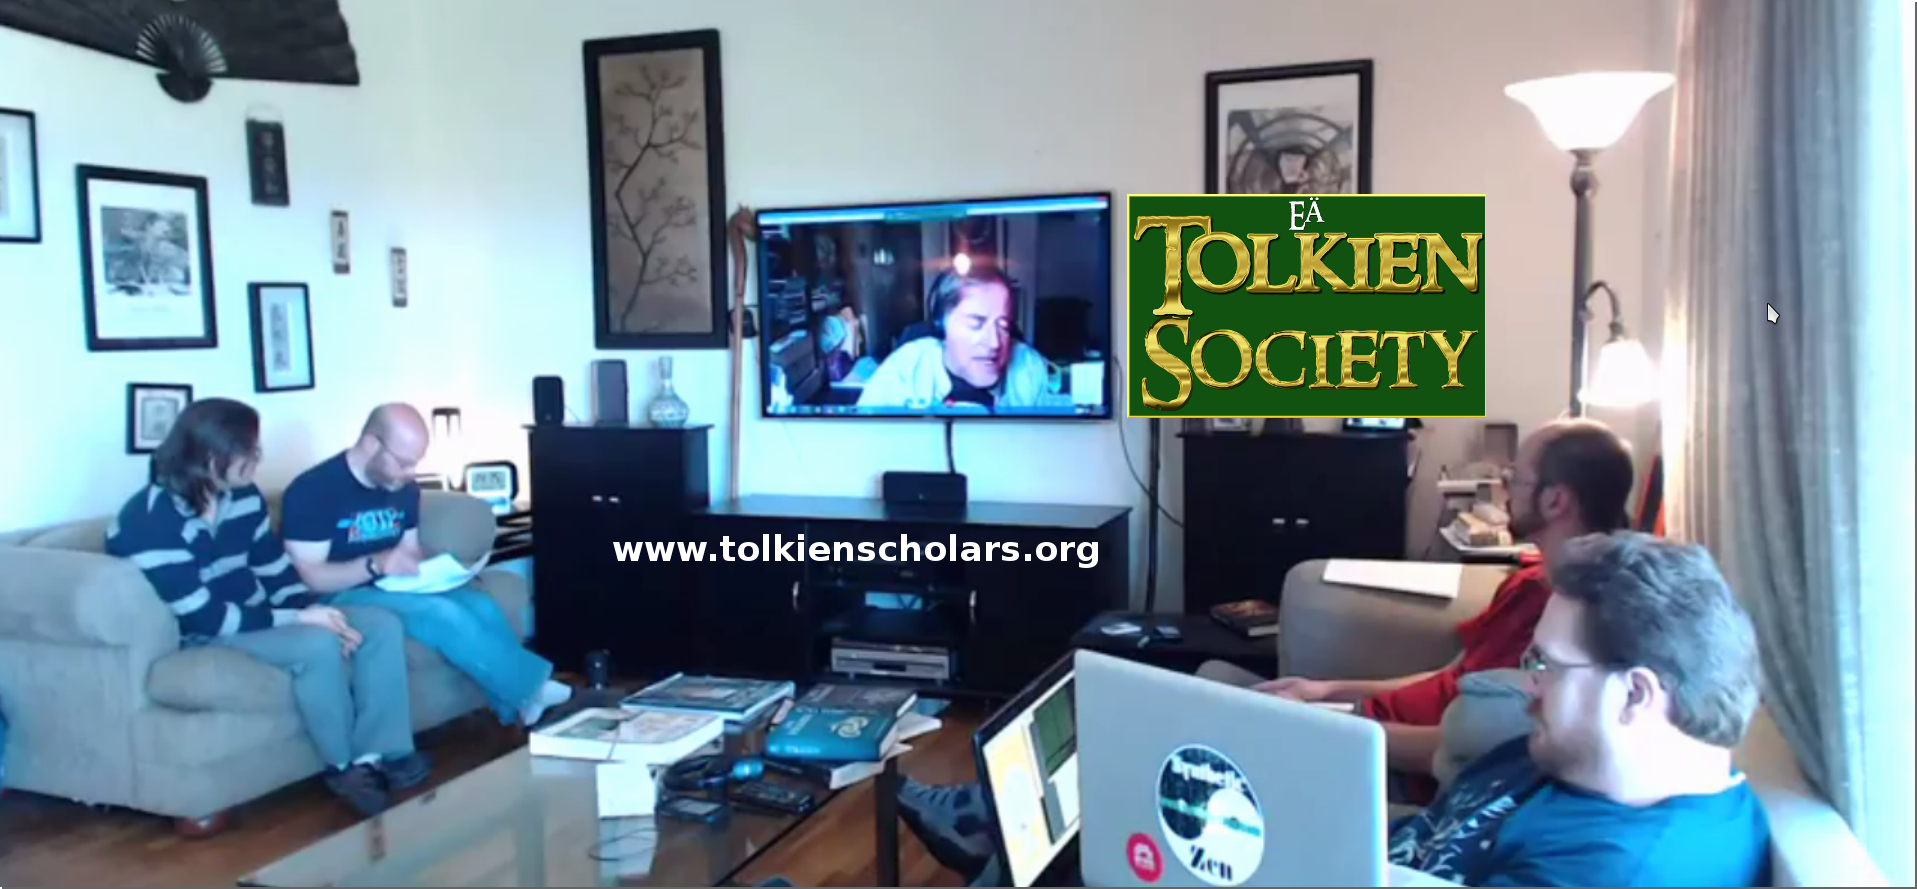 Reminder: Eä Tolkien Society August 20, 2016 Meeting, 1-3 pm (Pacific Time)